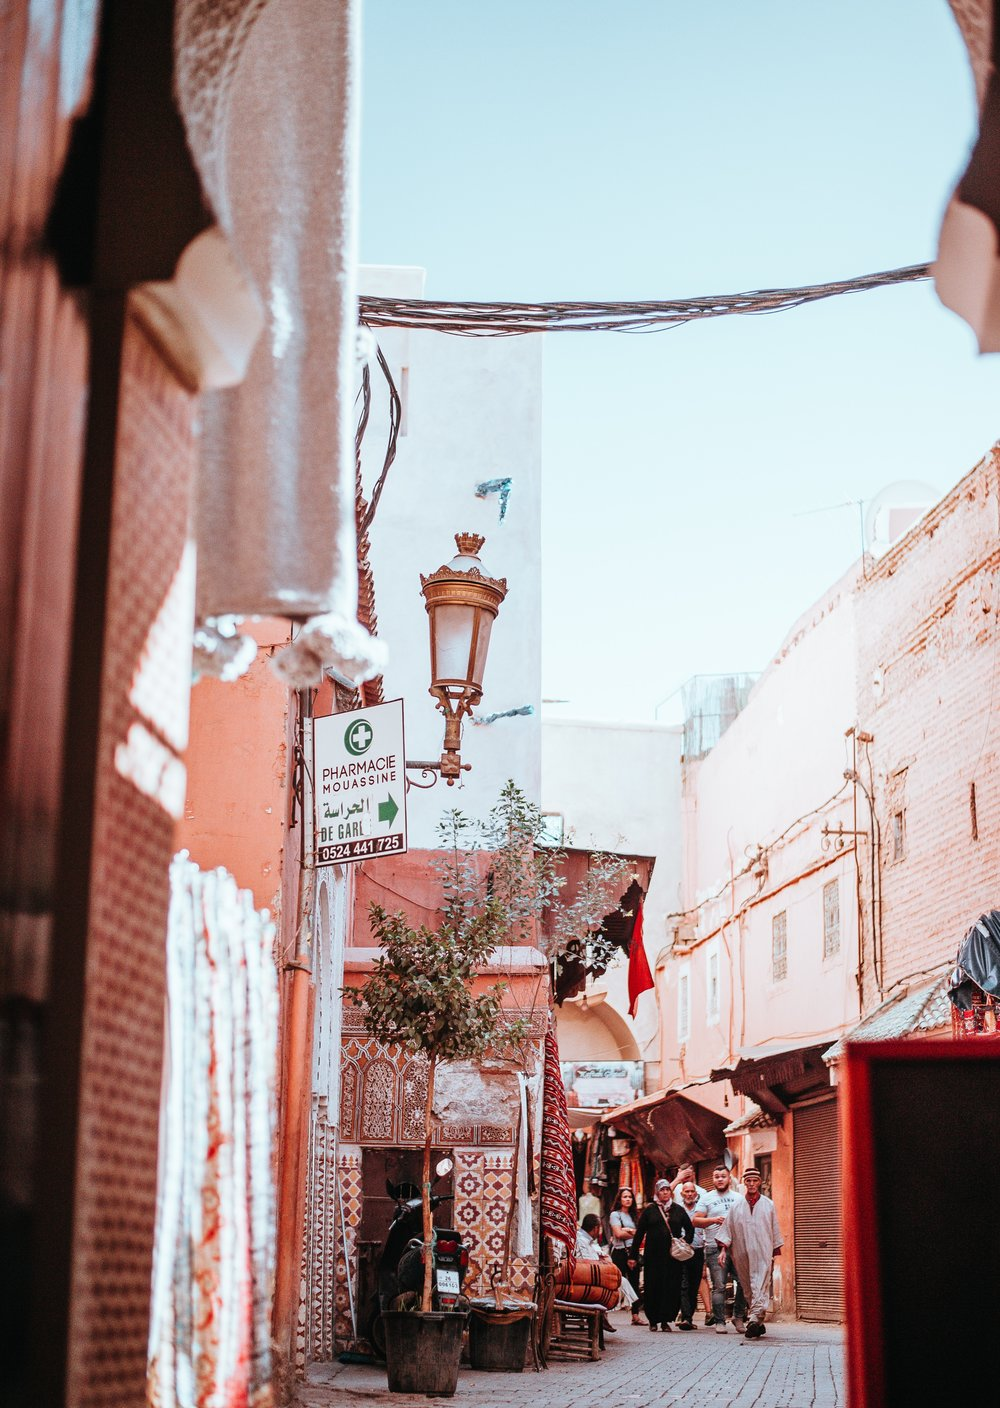 Marrakech Photo by  Annie Spratt  on  Unsplash